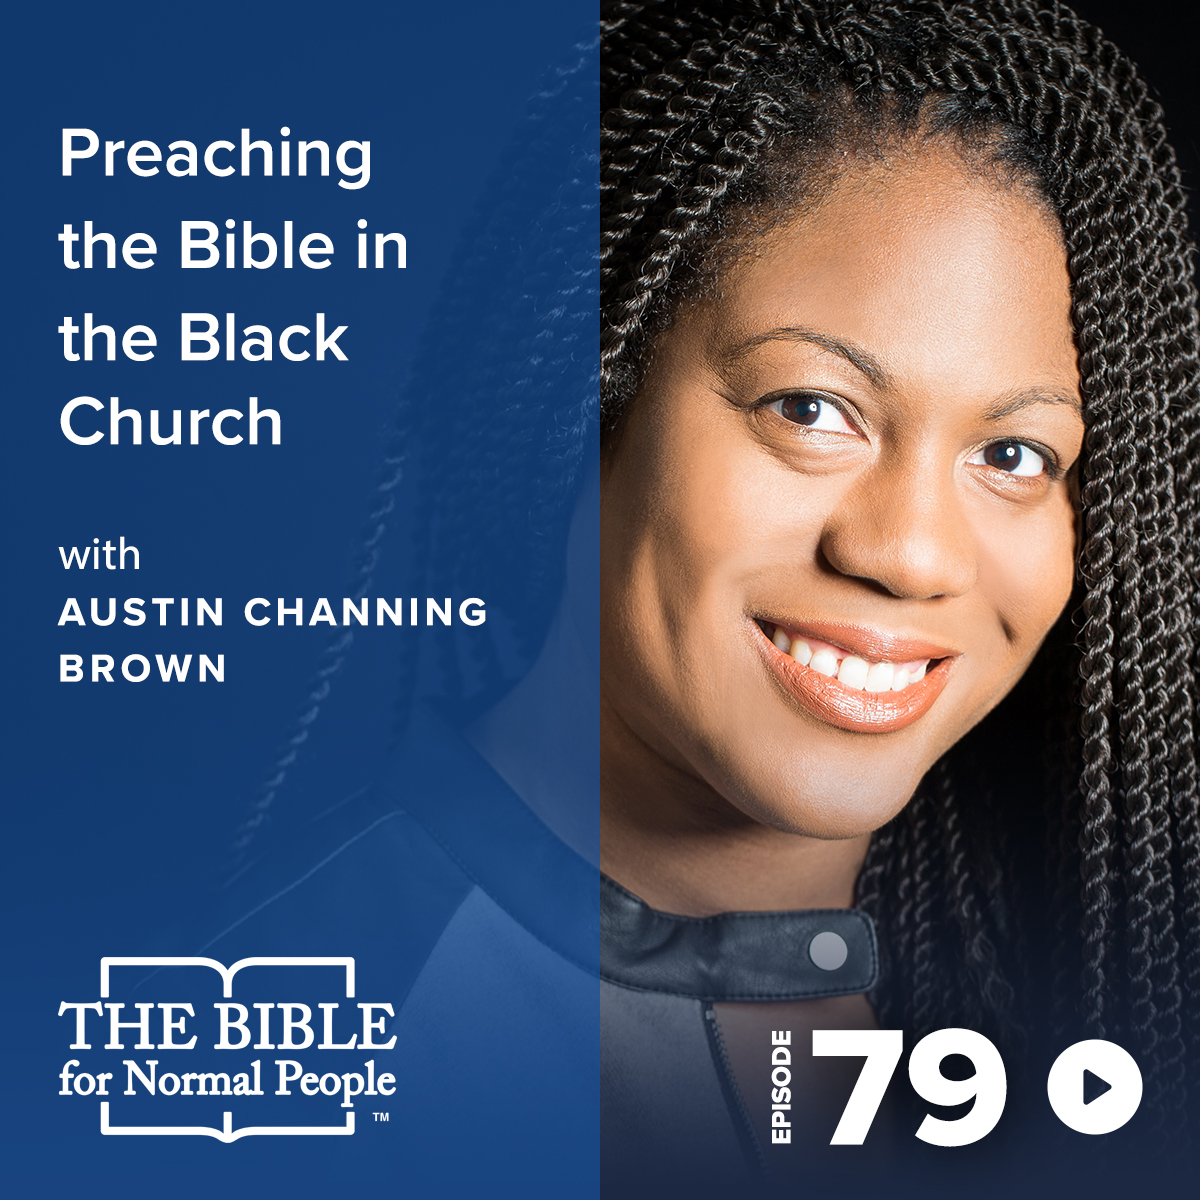 Episode 79: Austin Channing Brown - Preaching the Bible in the Black Church